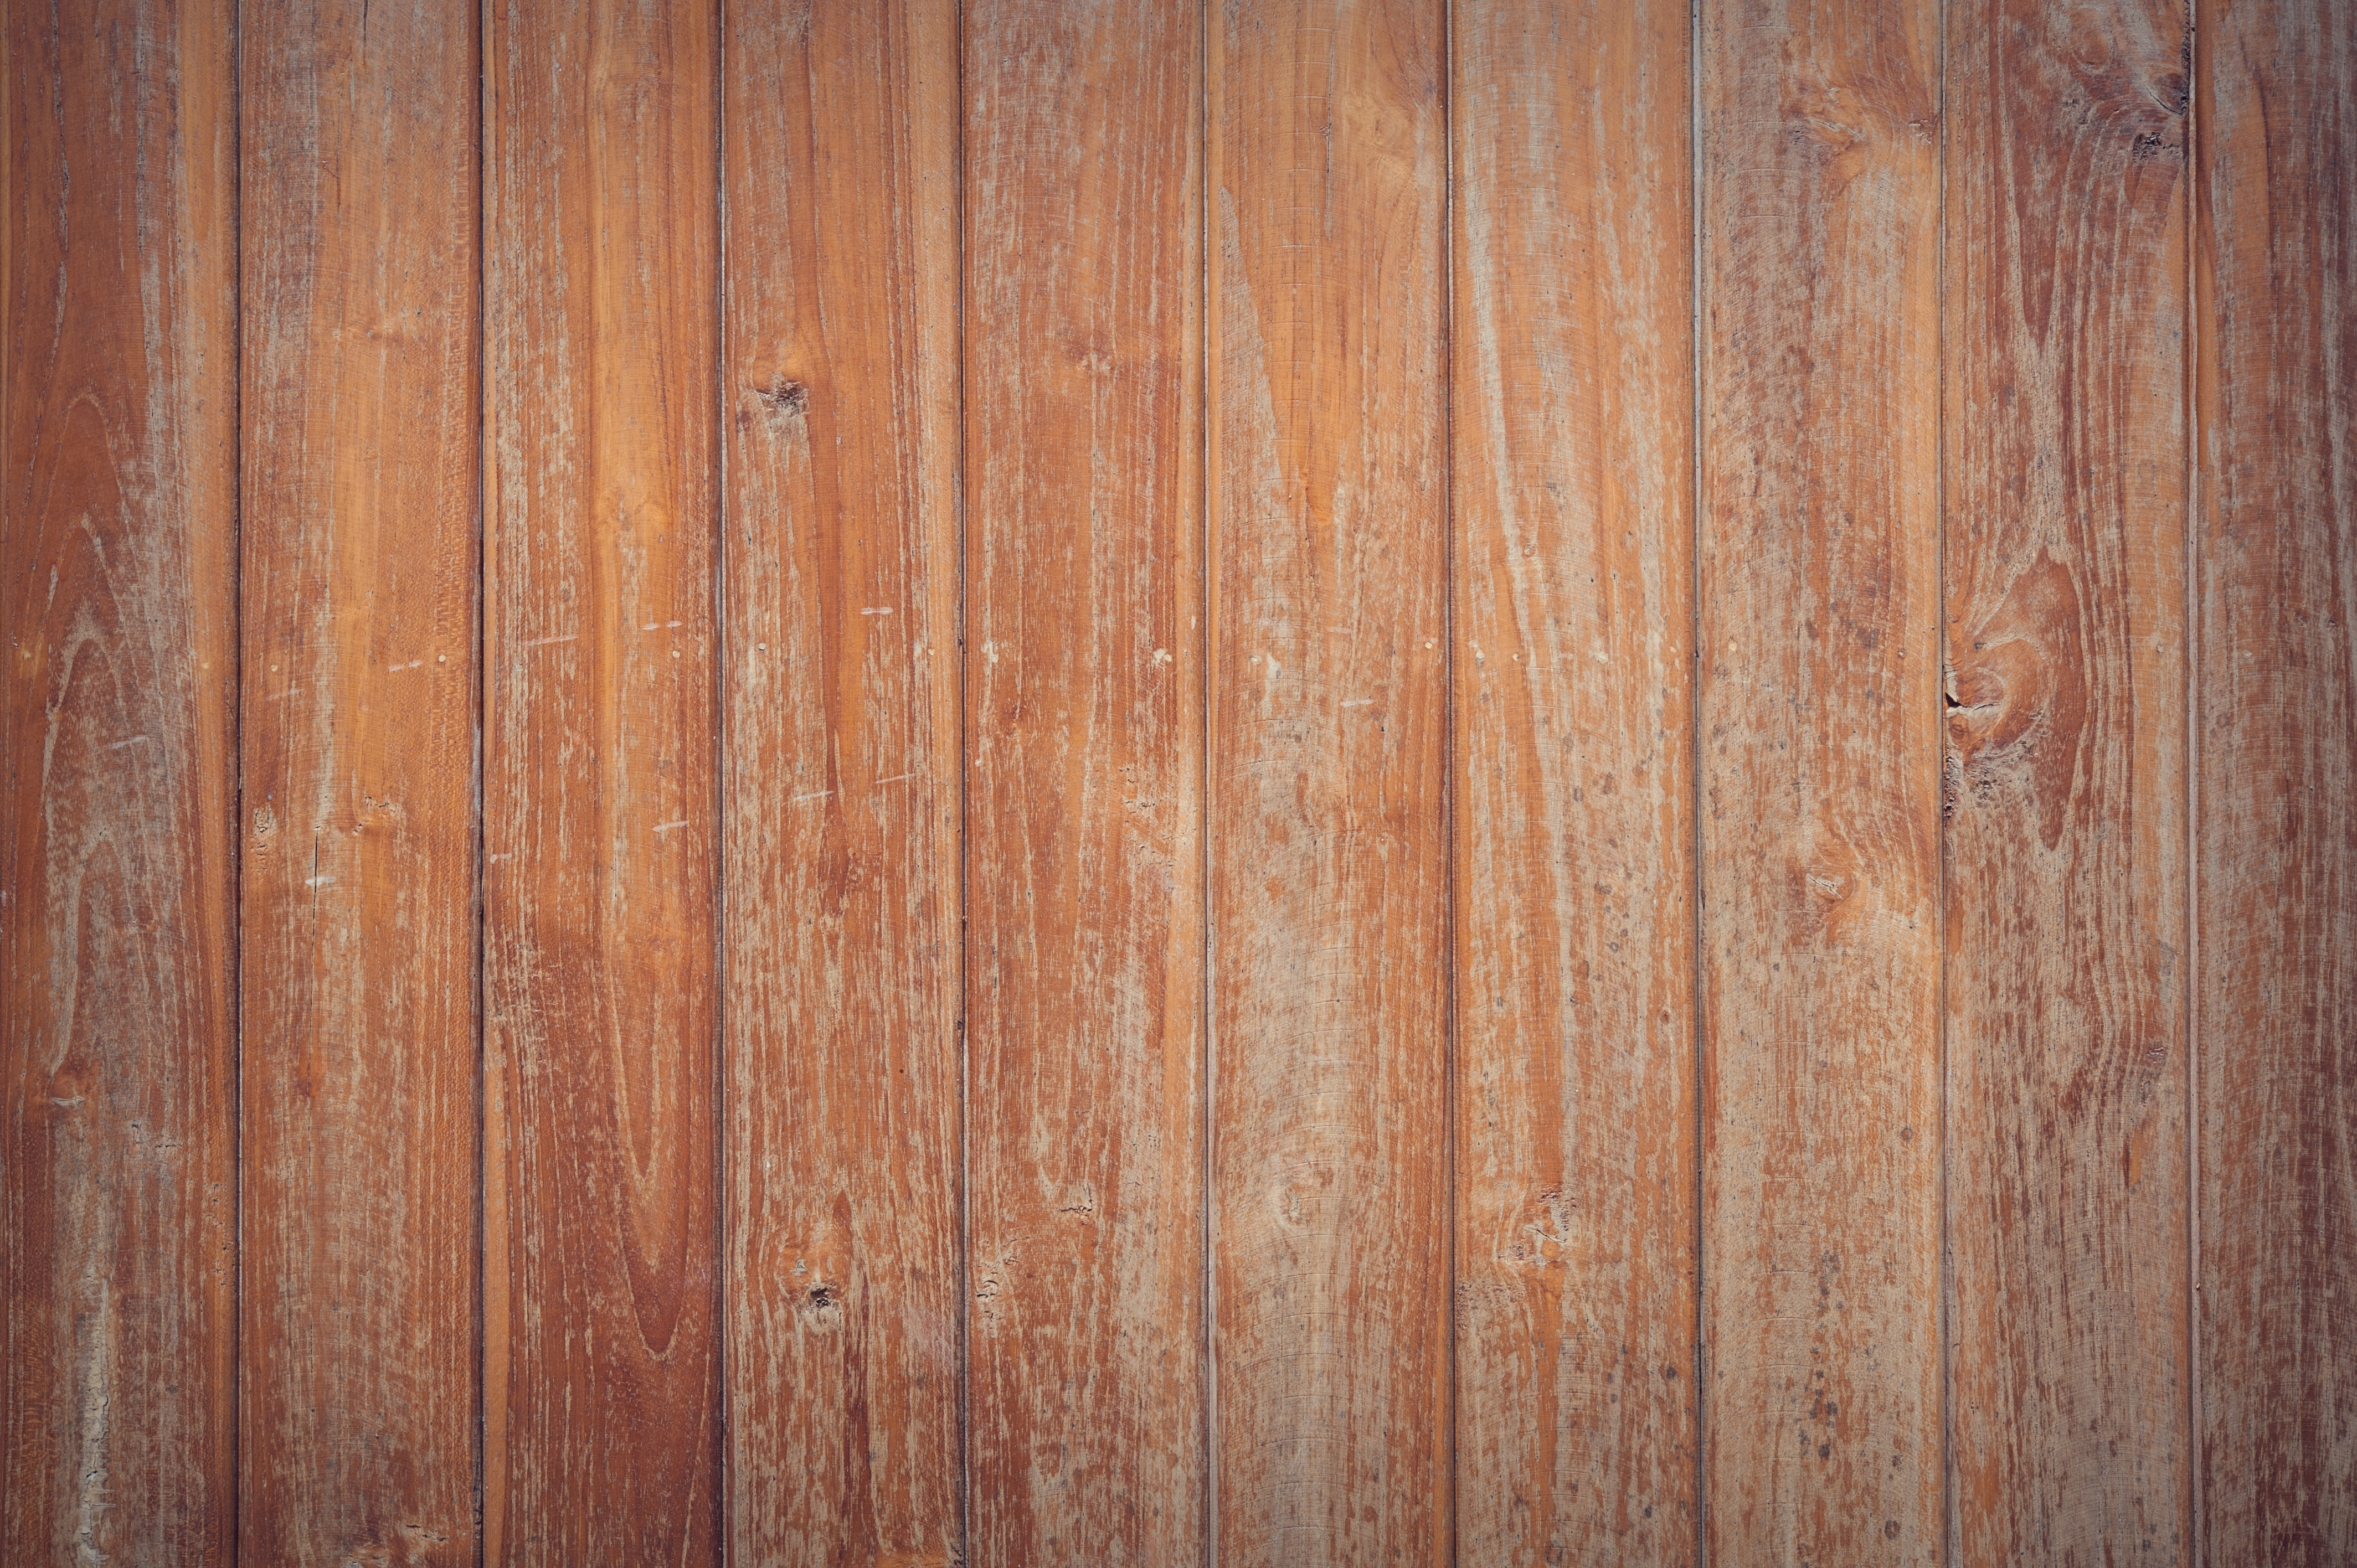 Brown wooden surface · free stock photo